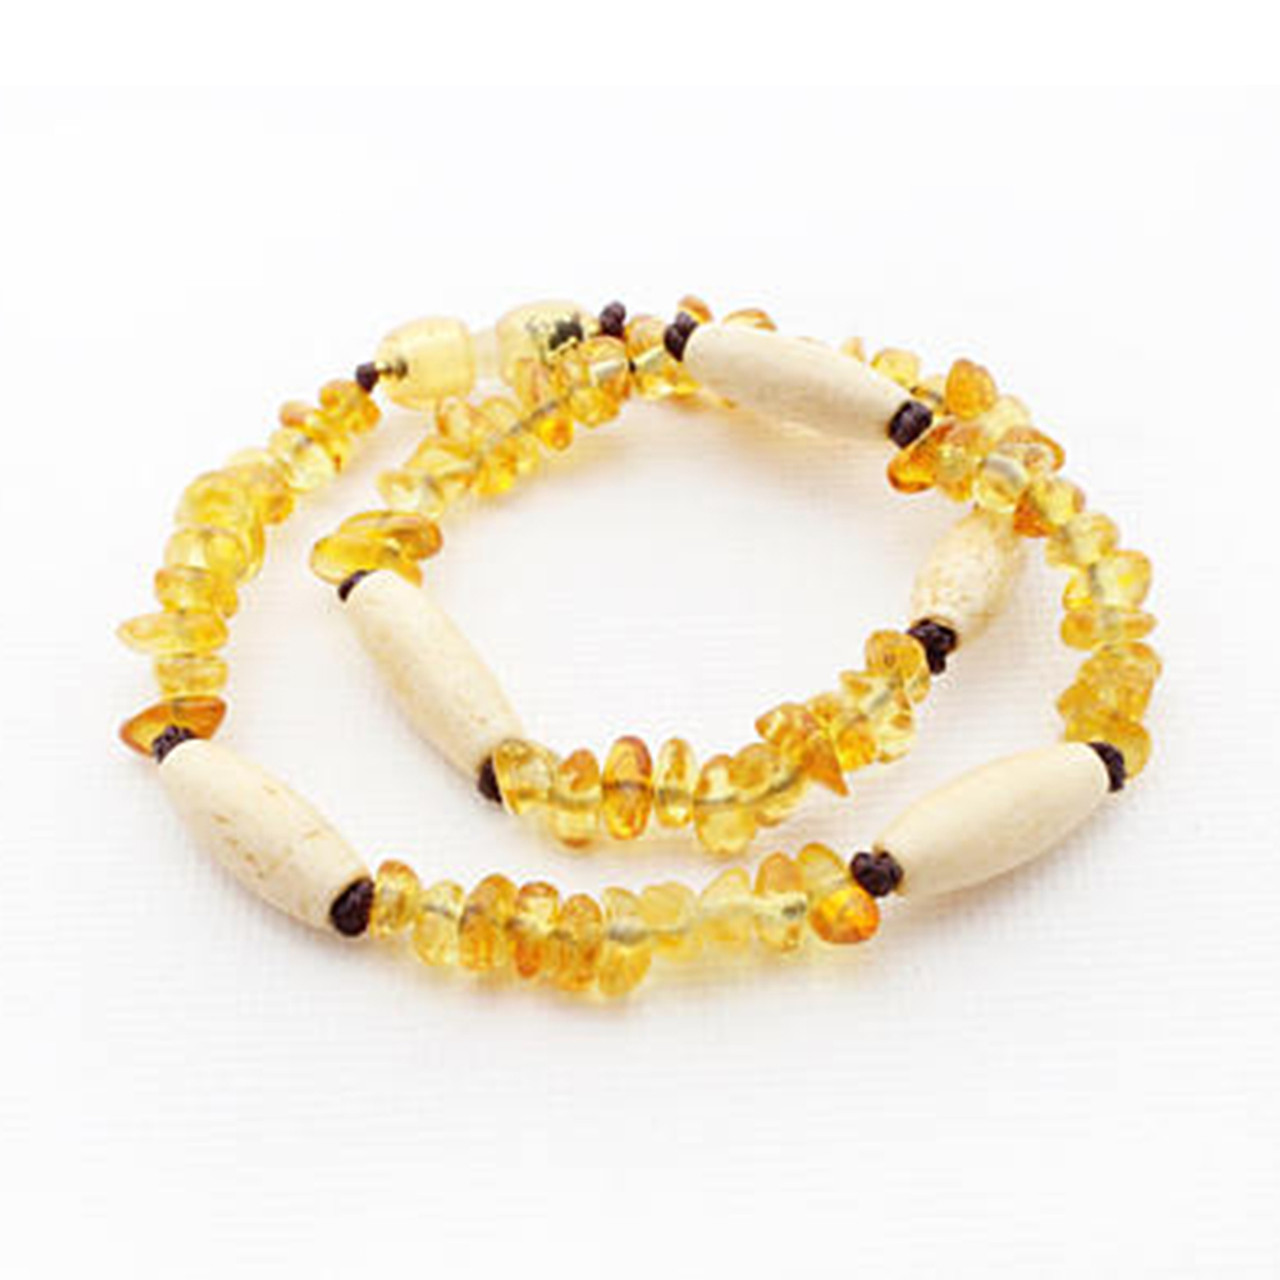 Raw Amber Teething Necklace Oblong Wood Beads Spearmint Ventures Llc